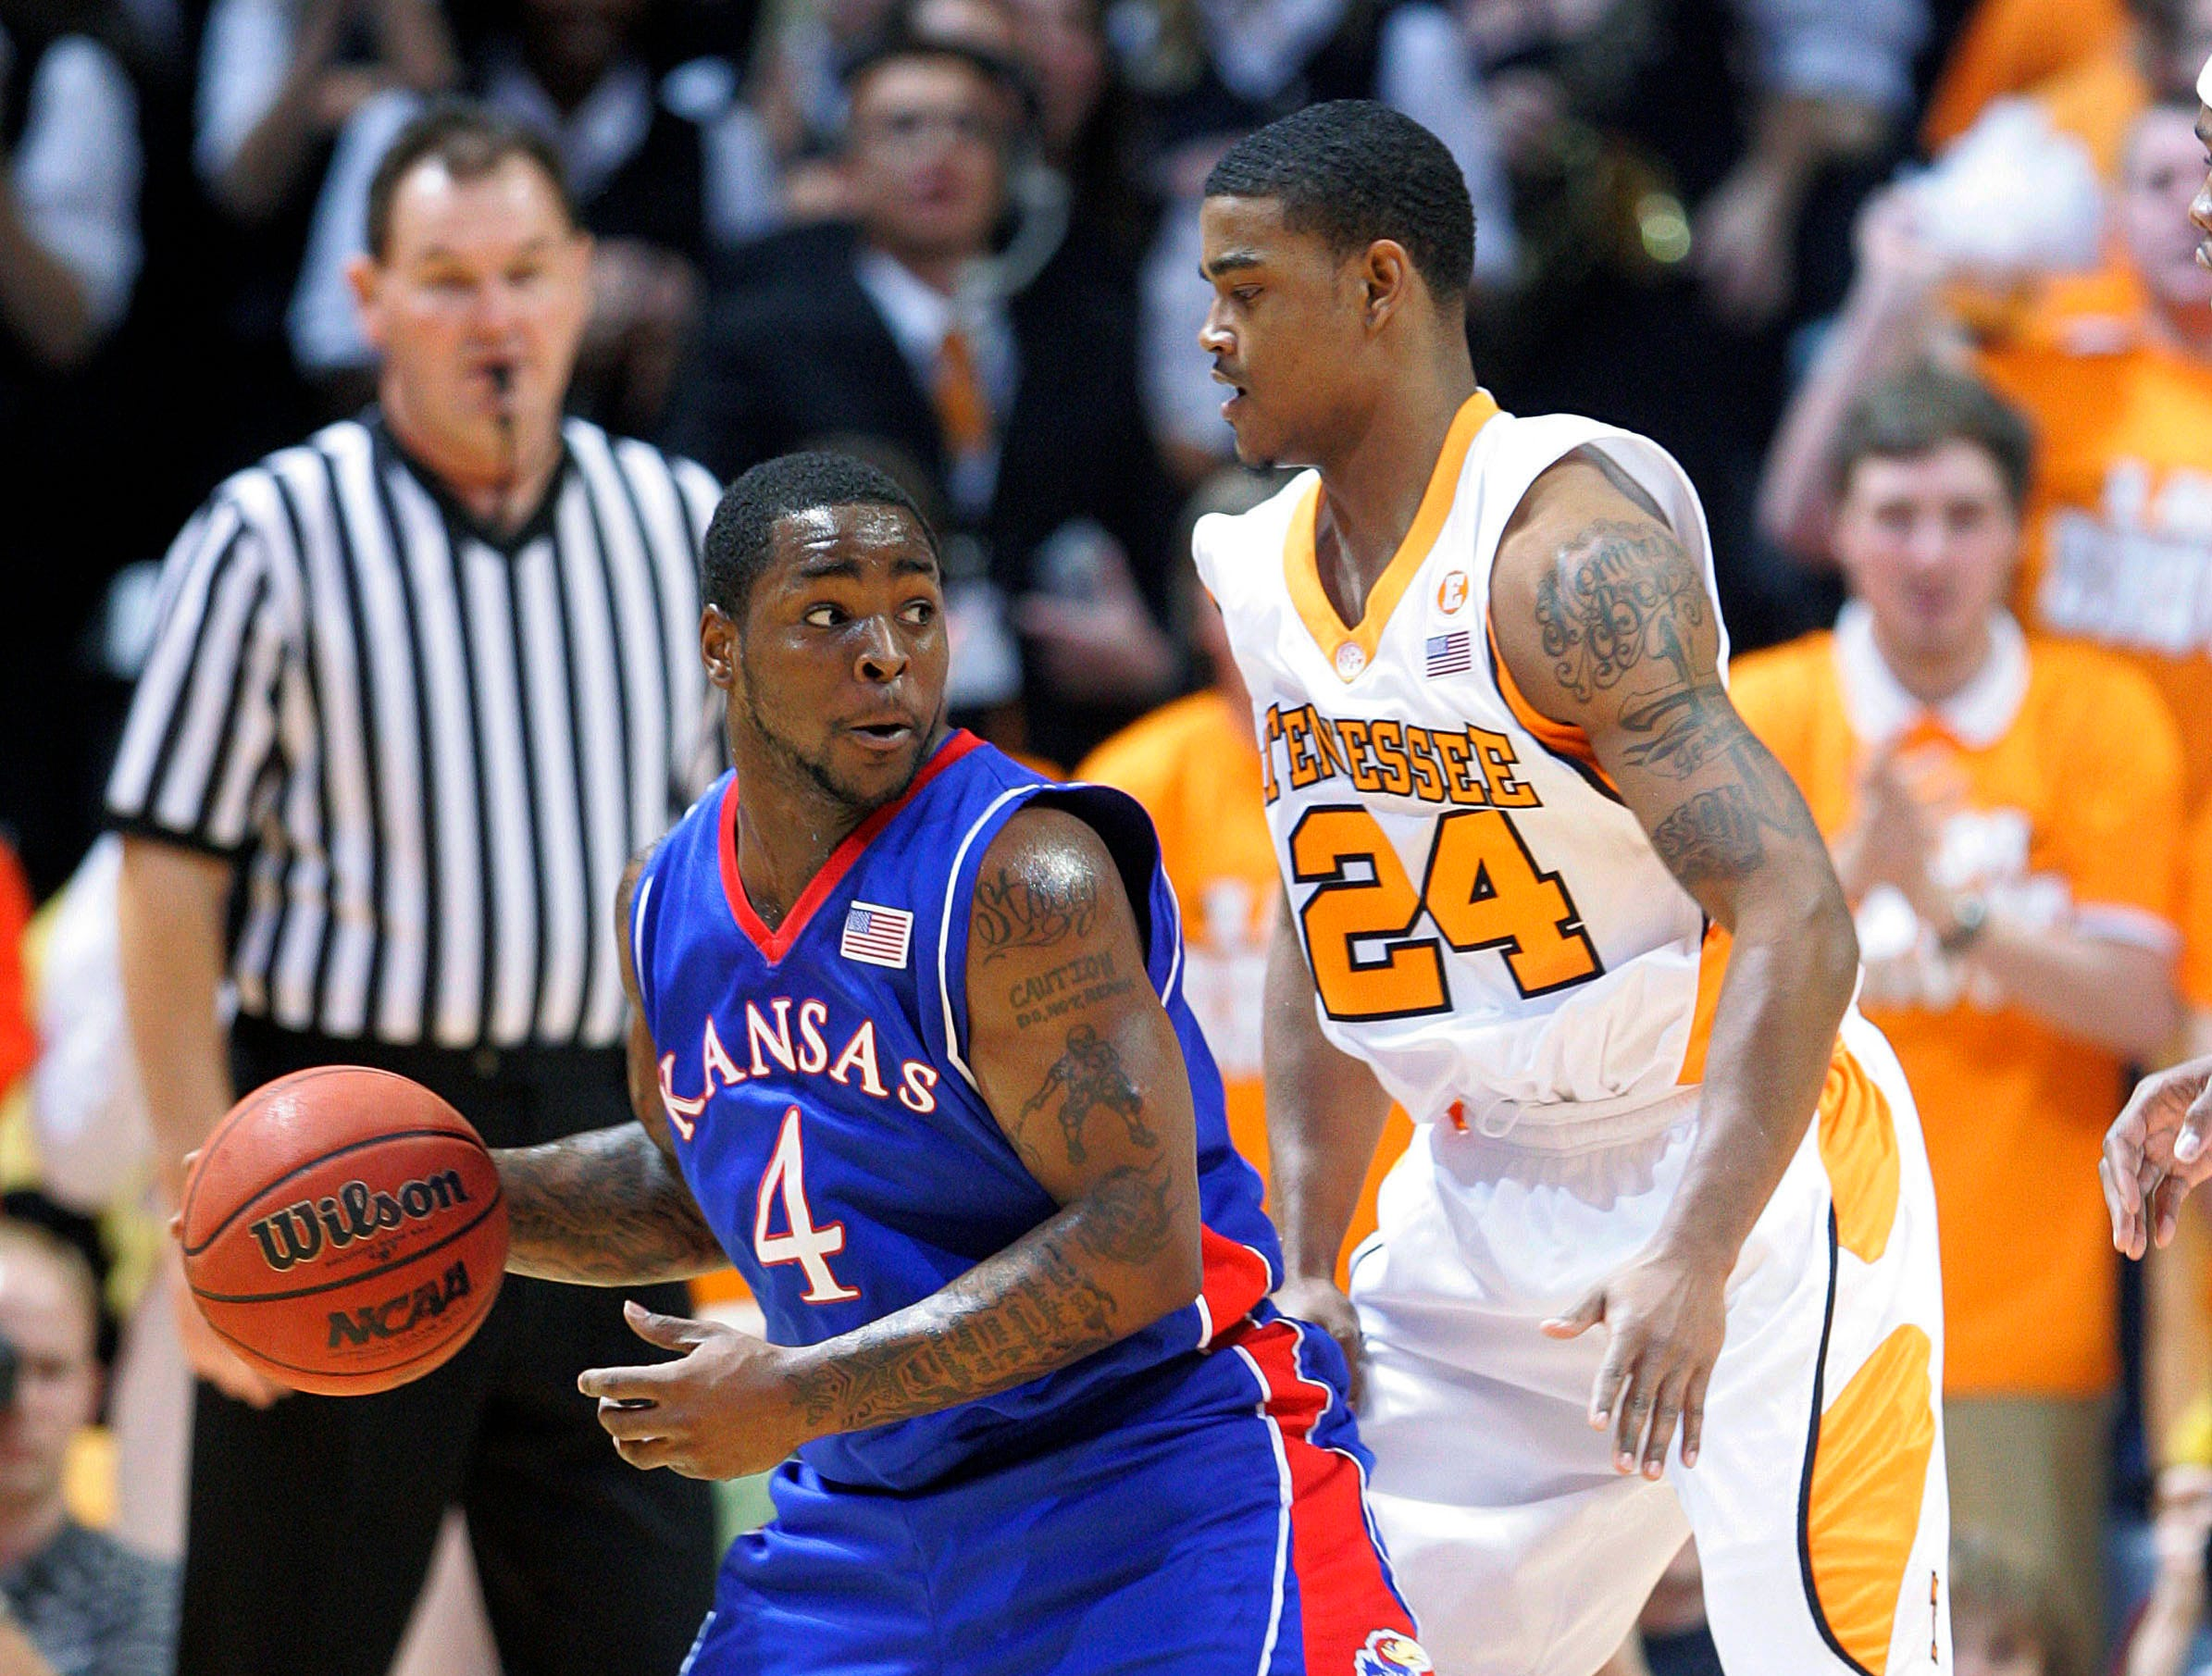 Kansas' Sherron Collins (4) drives against Tennessee's Josh Bone (24) during the first half of an NCAA college basketball game Sunday, Jan. 10, 2010, in Knoxville, Tenn. Tennessee won 76-68.